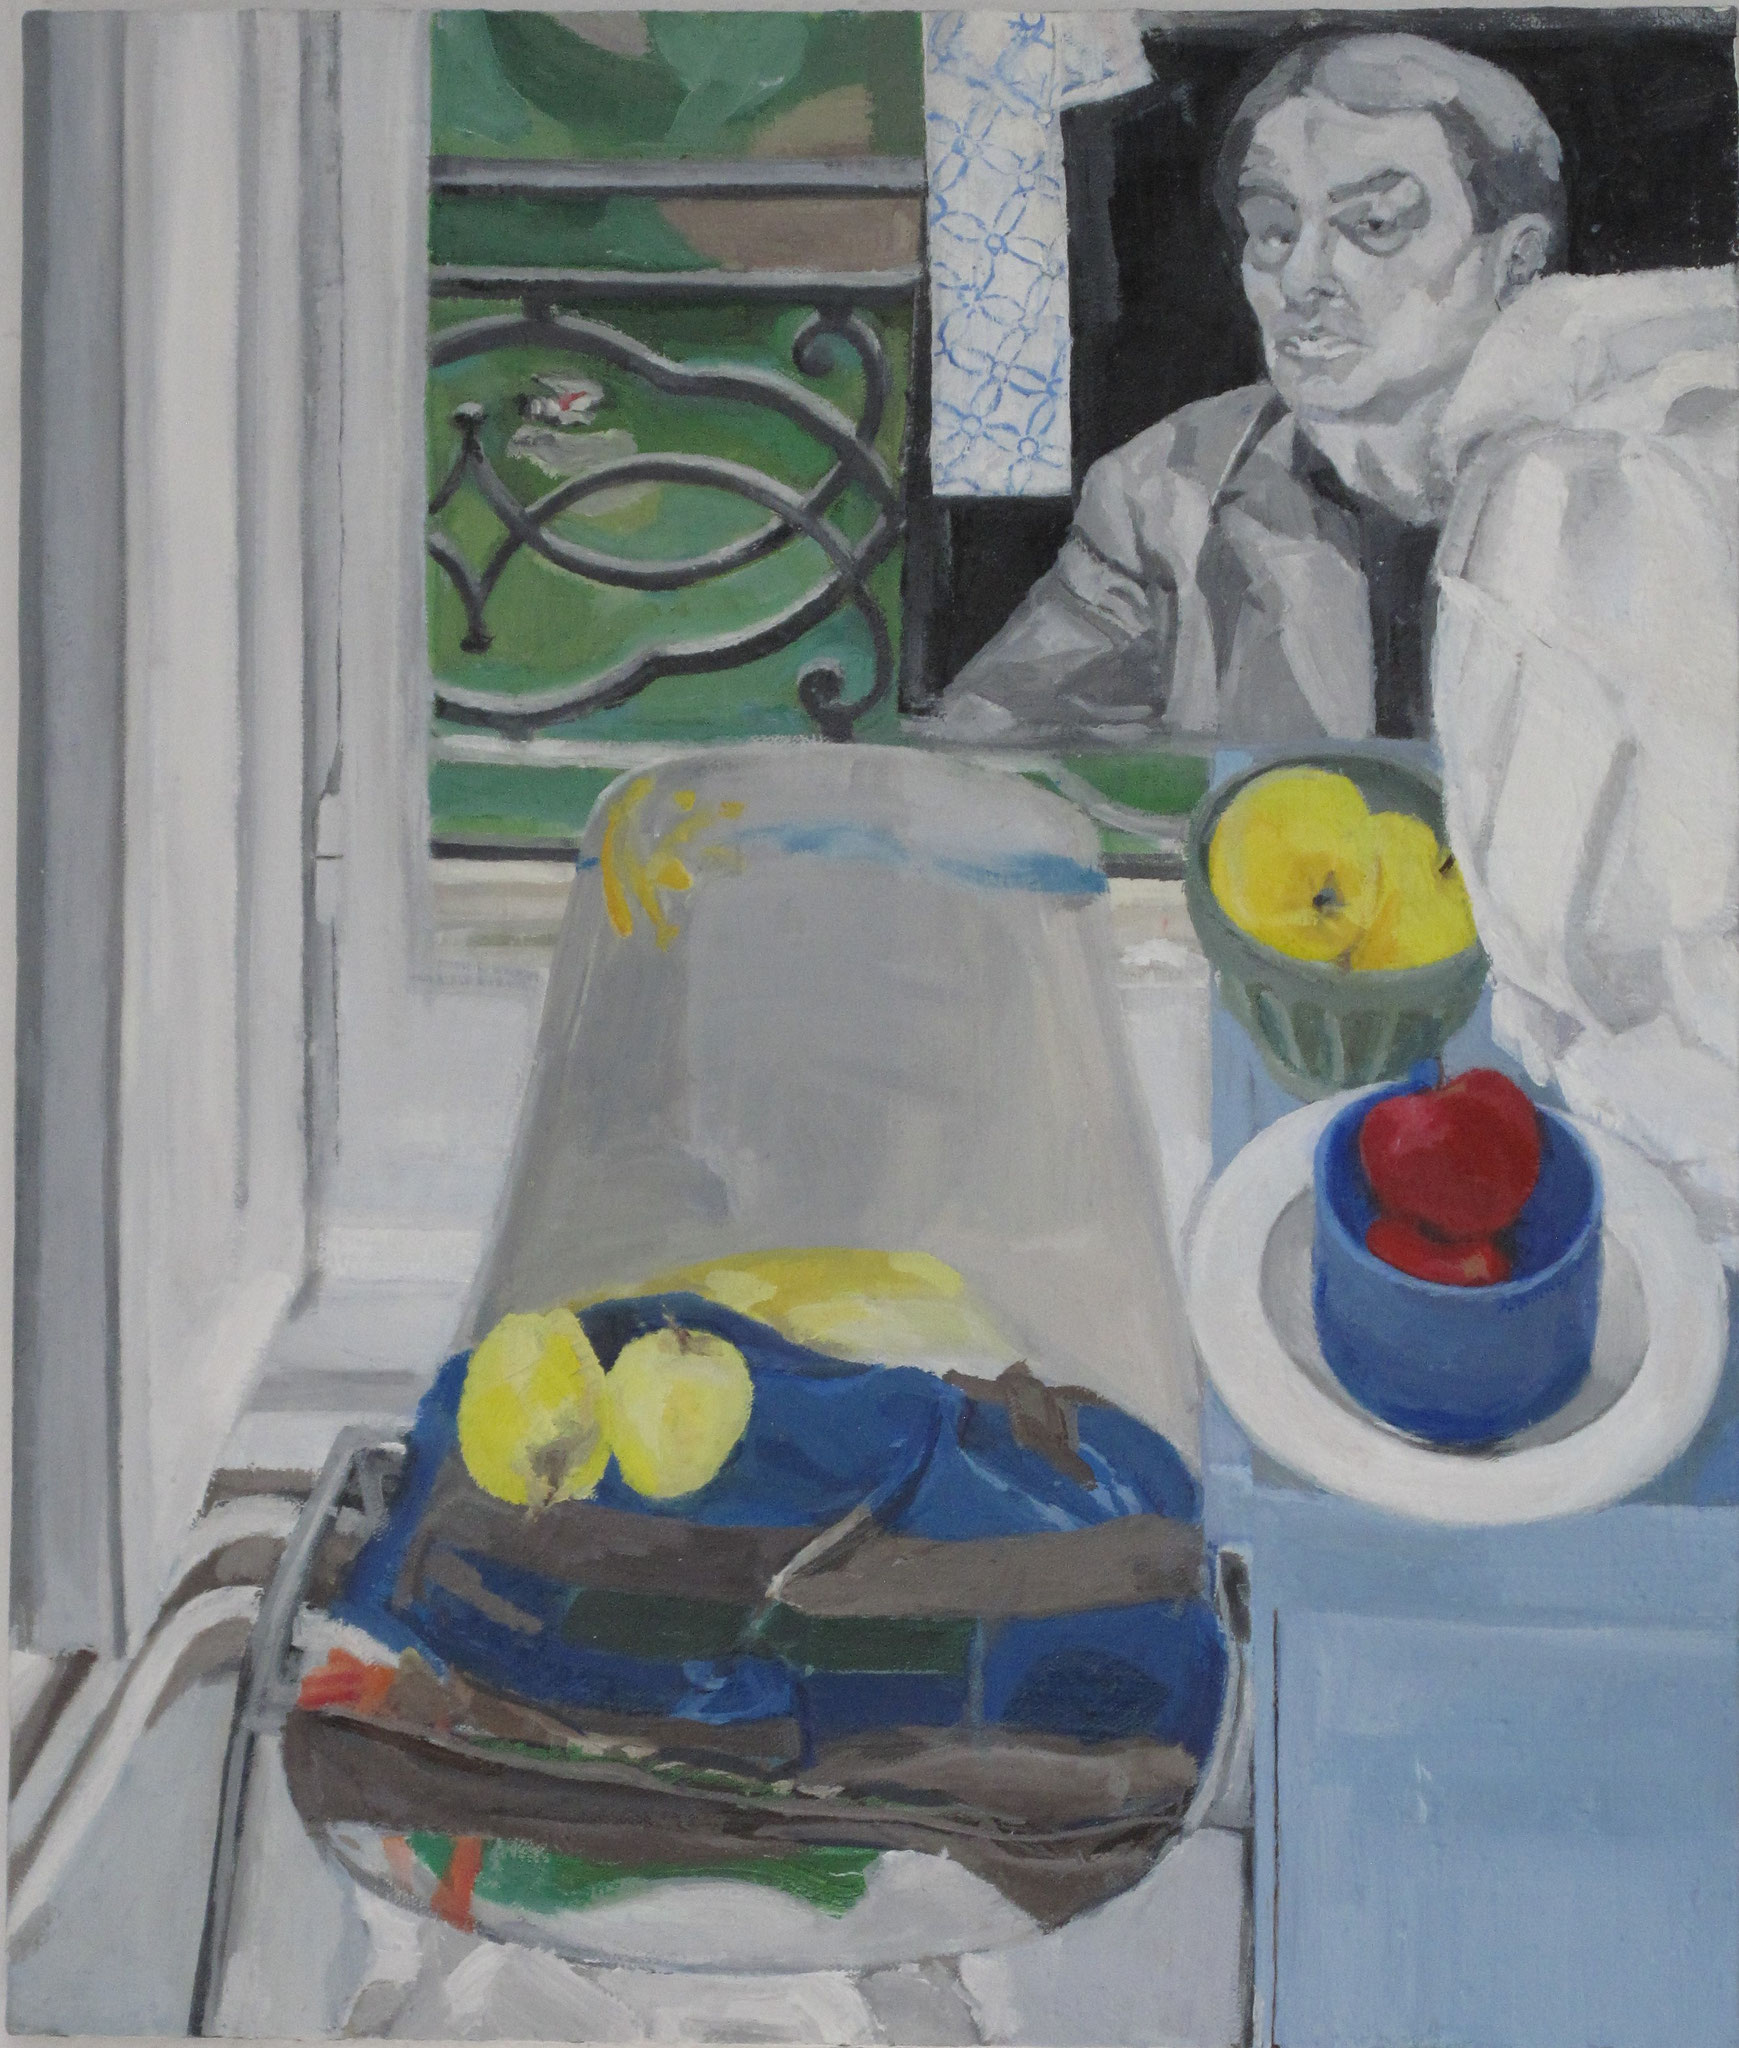 Political Still Life I, 2014, Oil on canvas, 21.6 x 18.1 in.